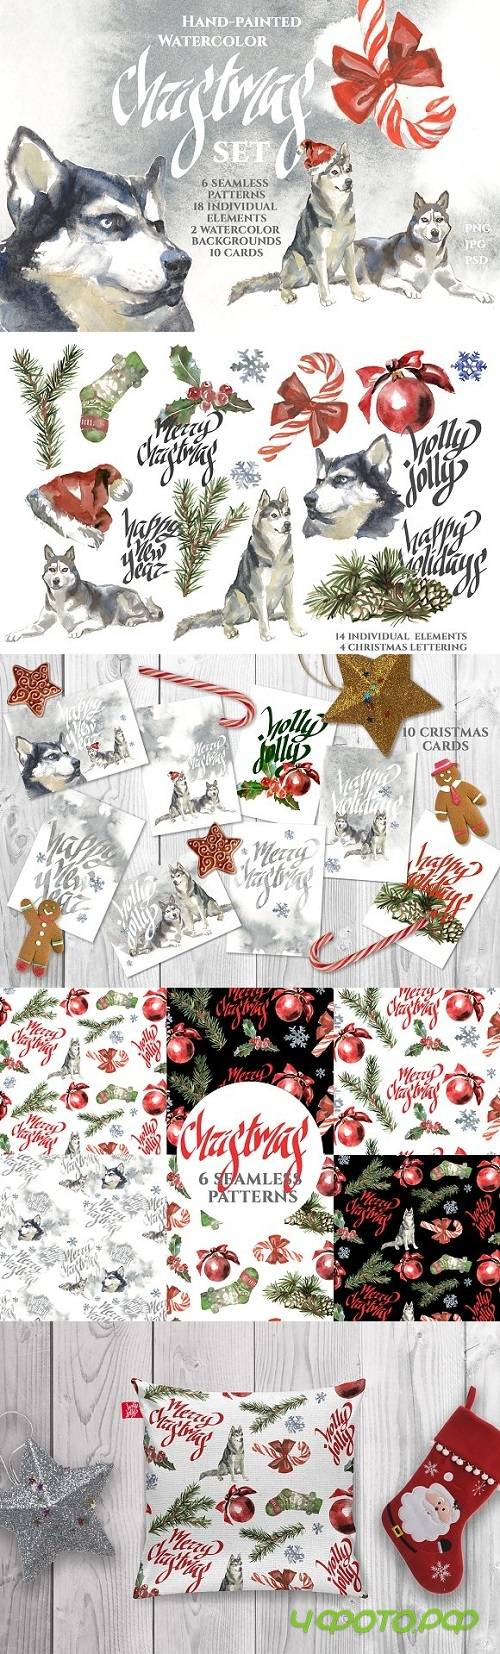 Chistmas Watercolor Set 2065844